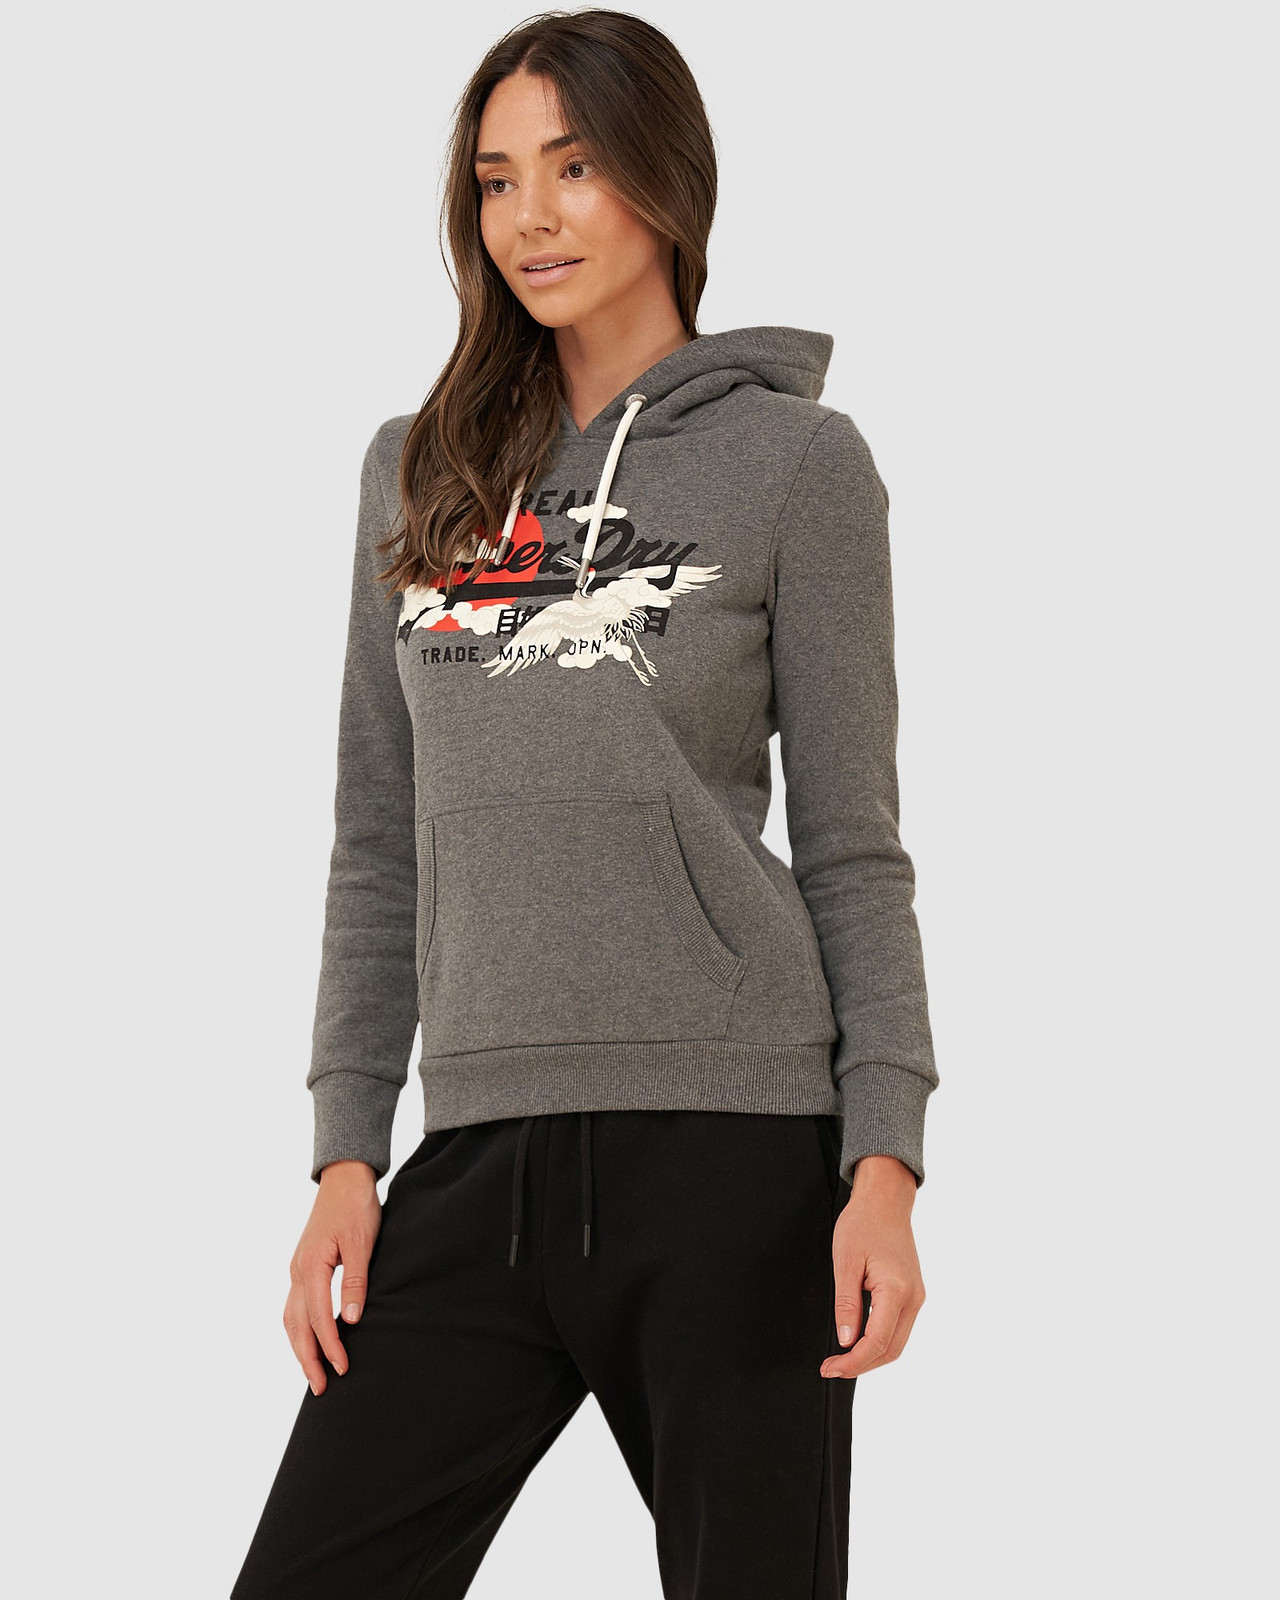 Superdry Womens VL RISING SUN HOOD BR Brown Overhead Hoodie 0